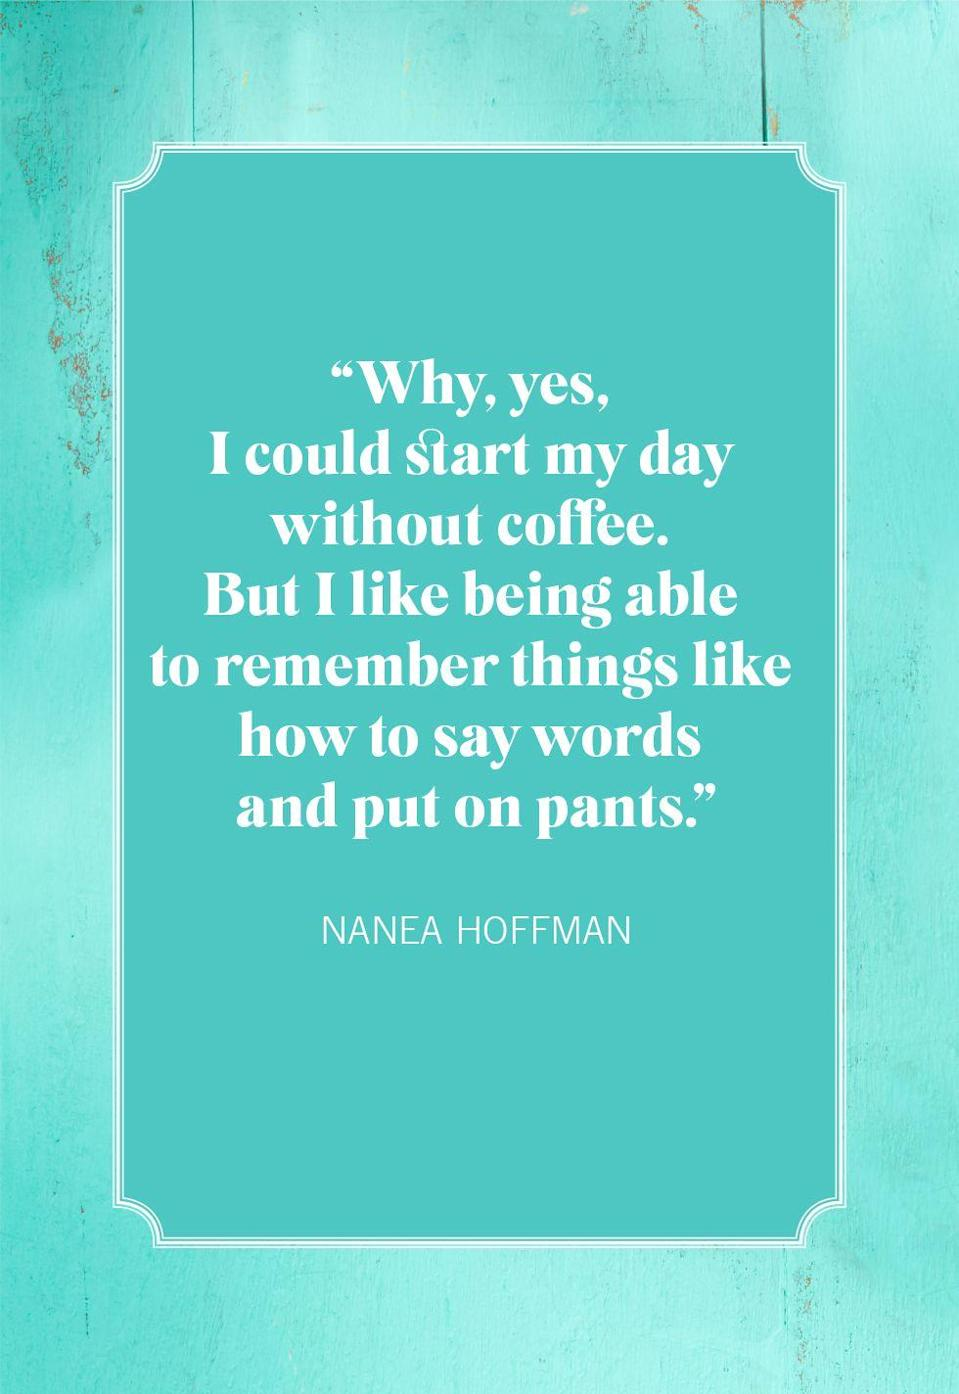 """<p>""""Why, yes, I could start my day without coffee. But I like being able to remember things like how to say words and put on pants.""""</p>"""